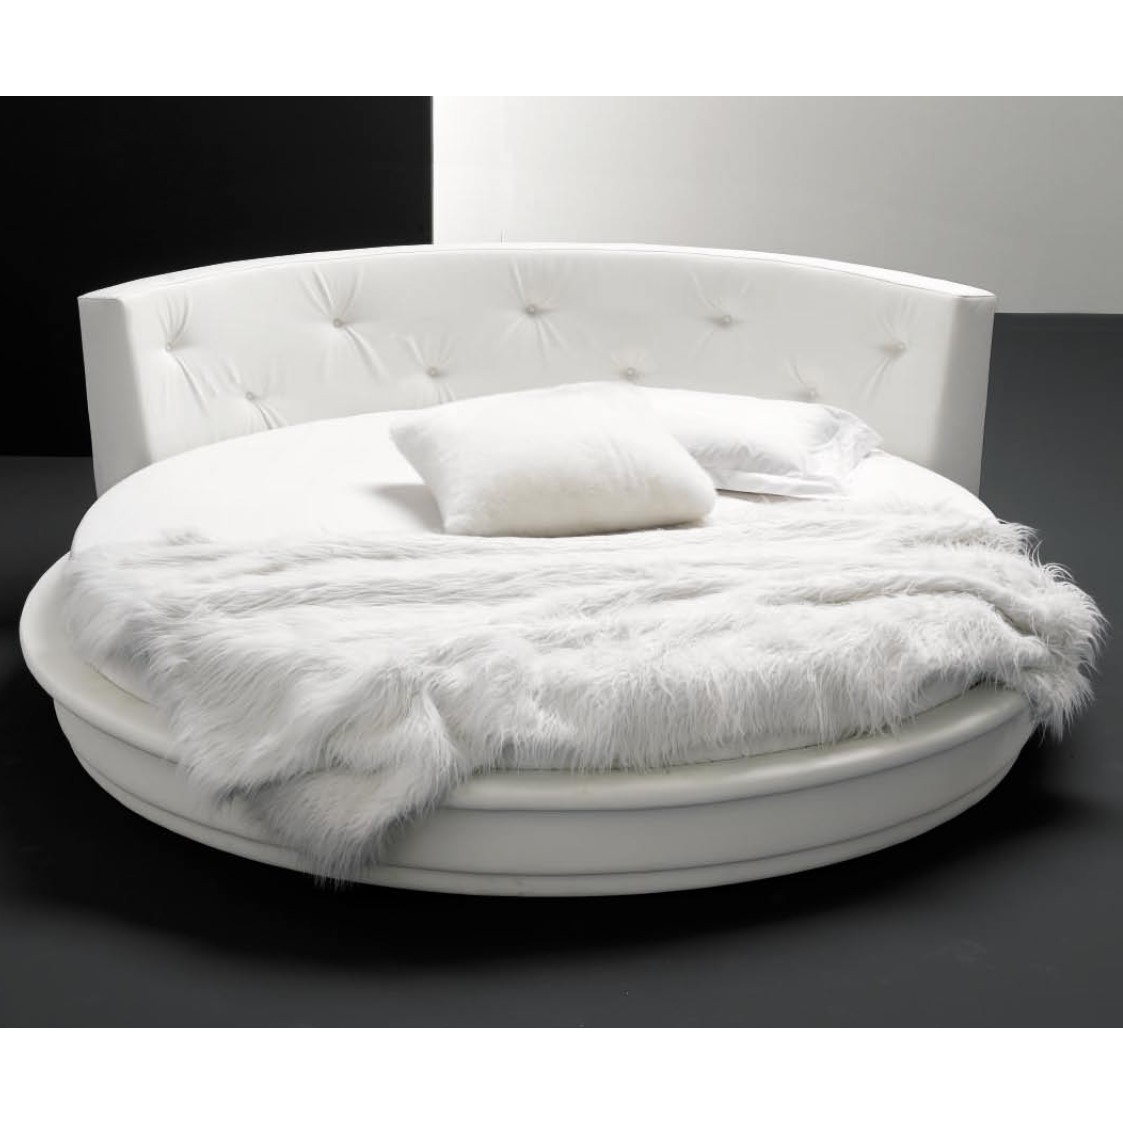 Round Beds | Round Bed with Canopy | Round Bassinet Bedding